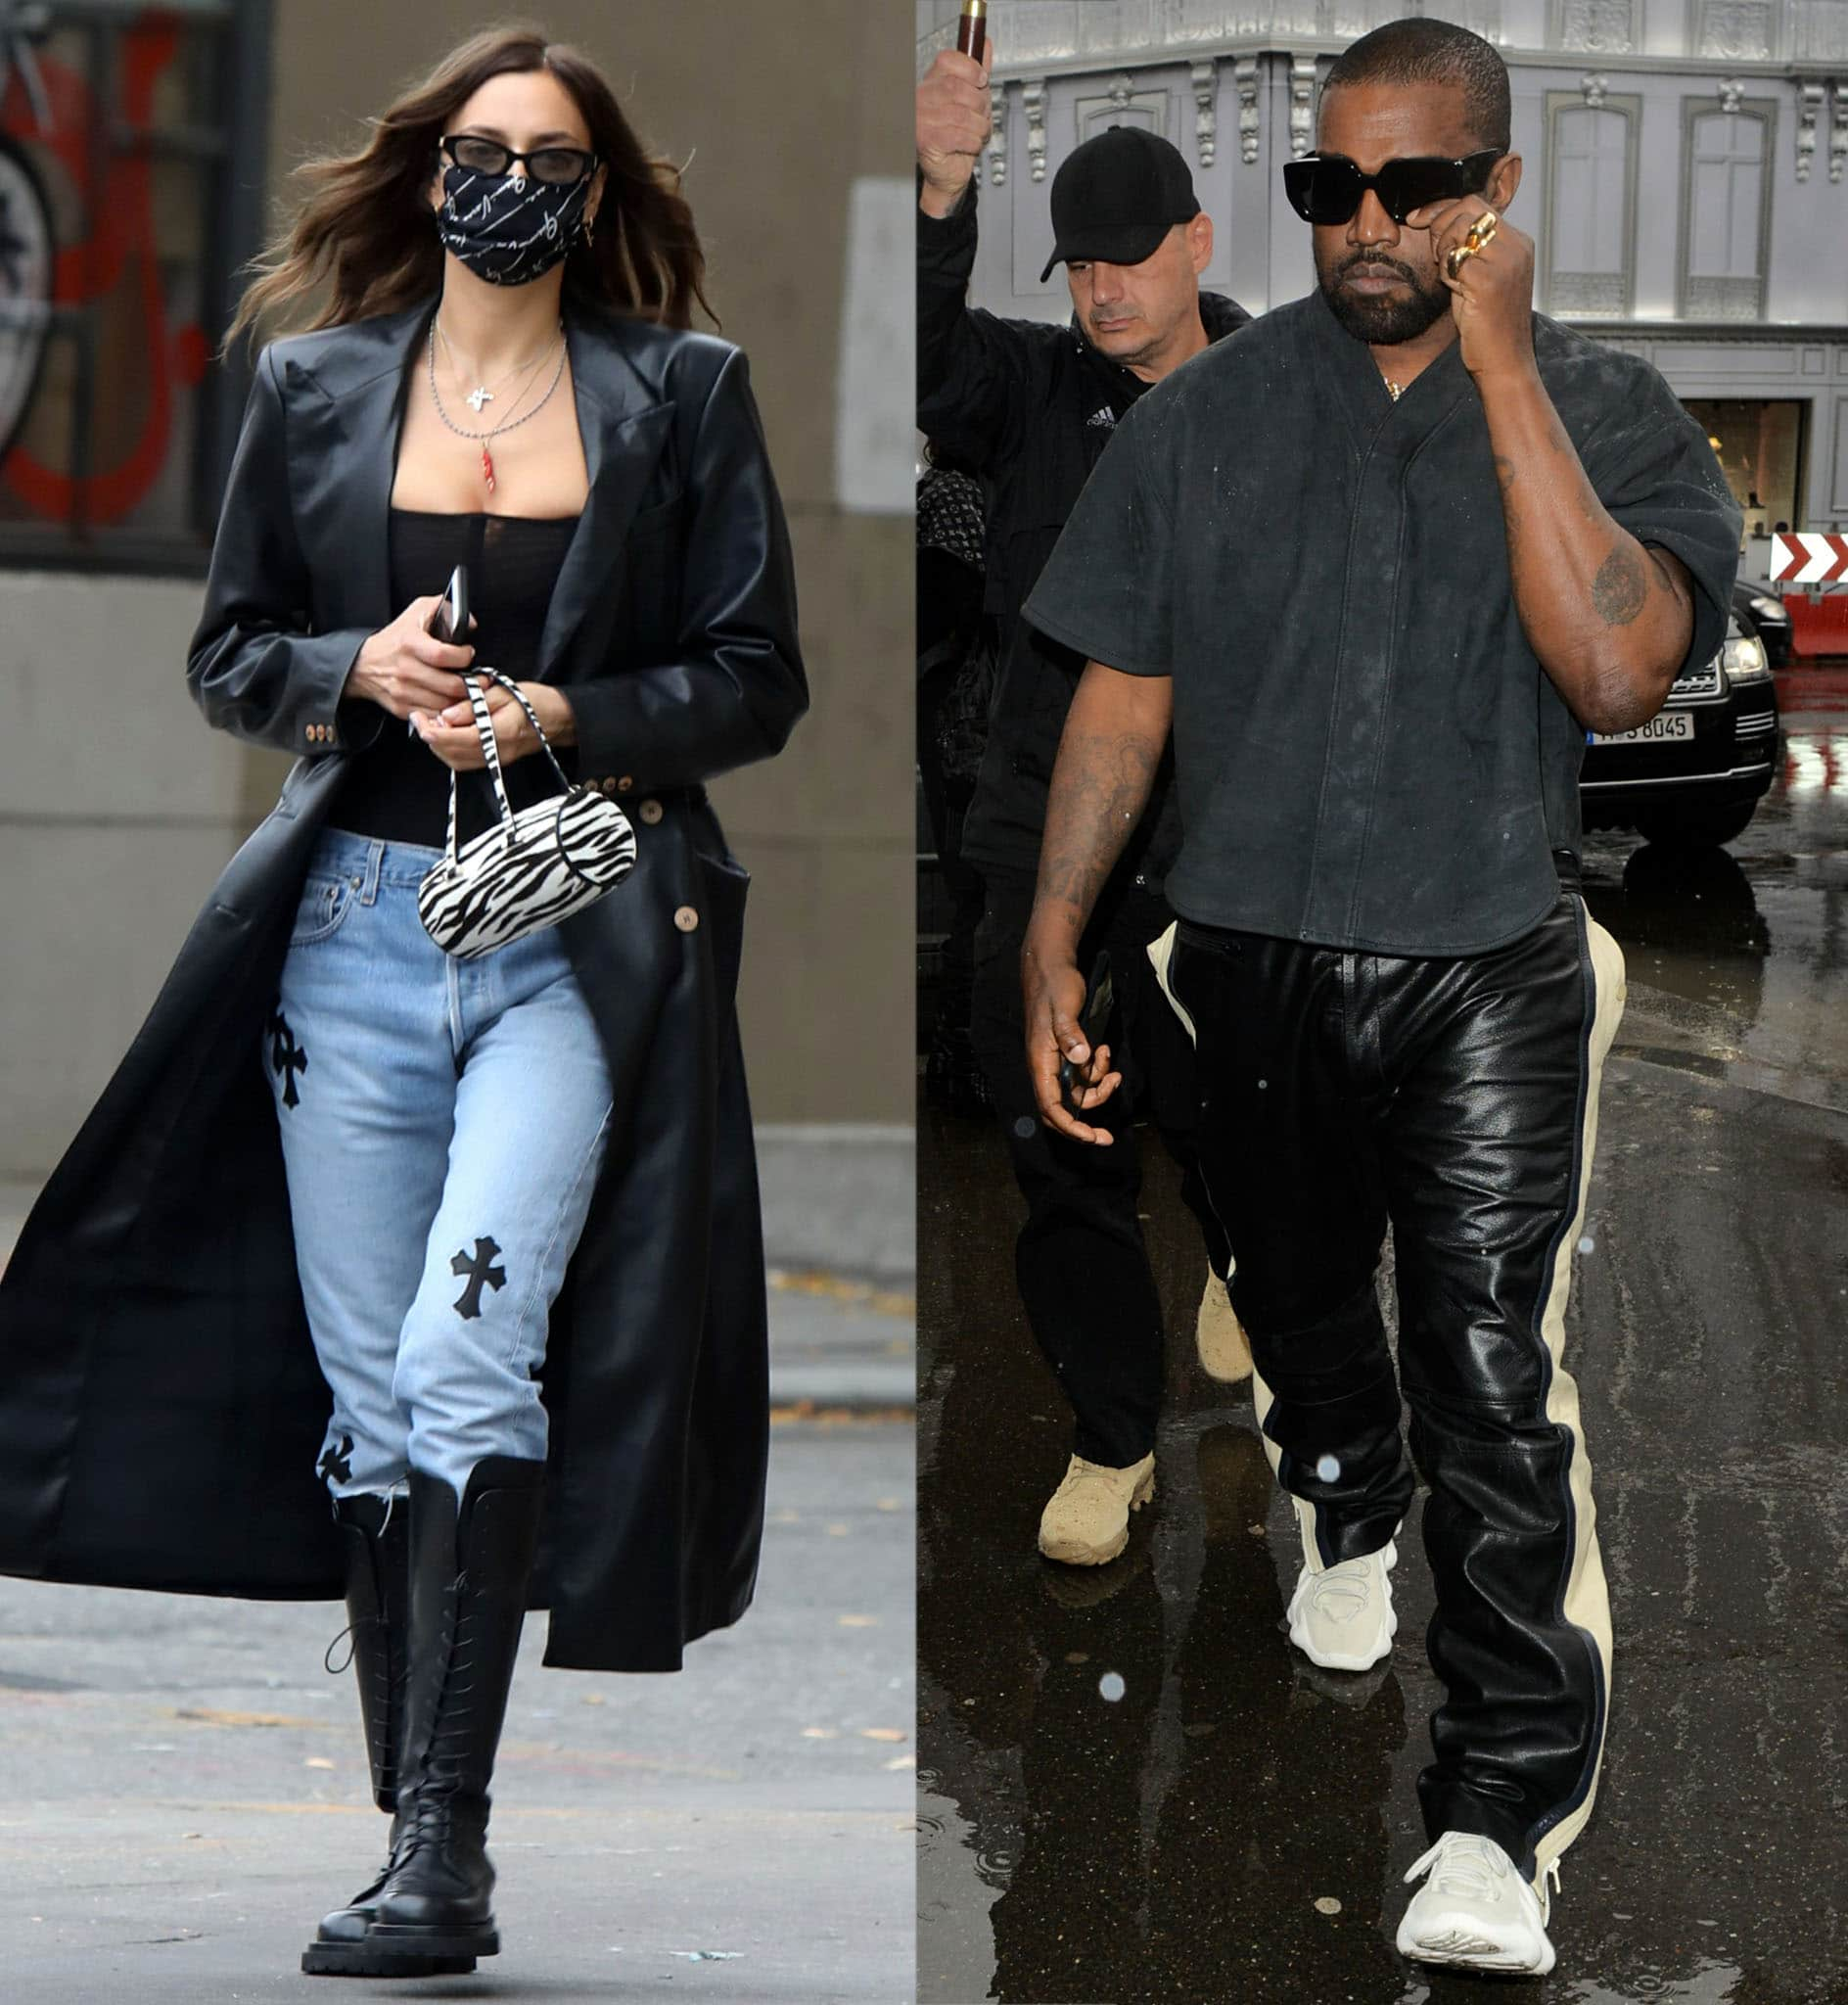 Irina Shayk and Kanye West are rumored to be dating after Deuxmoi insider spills tea